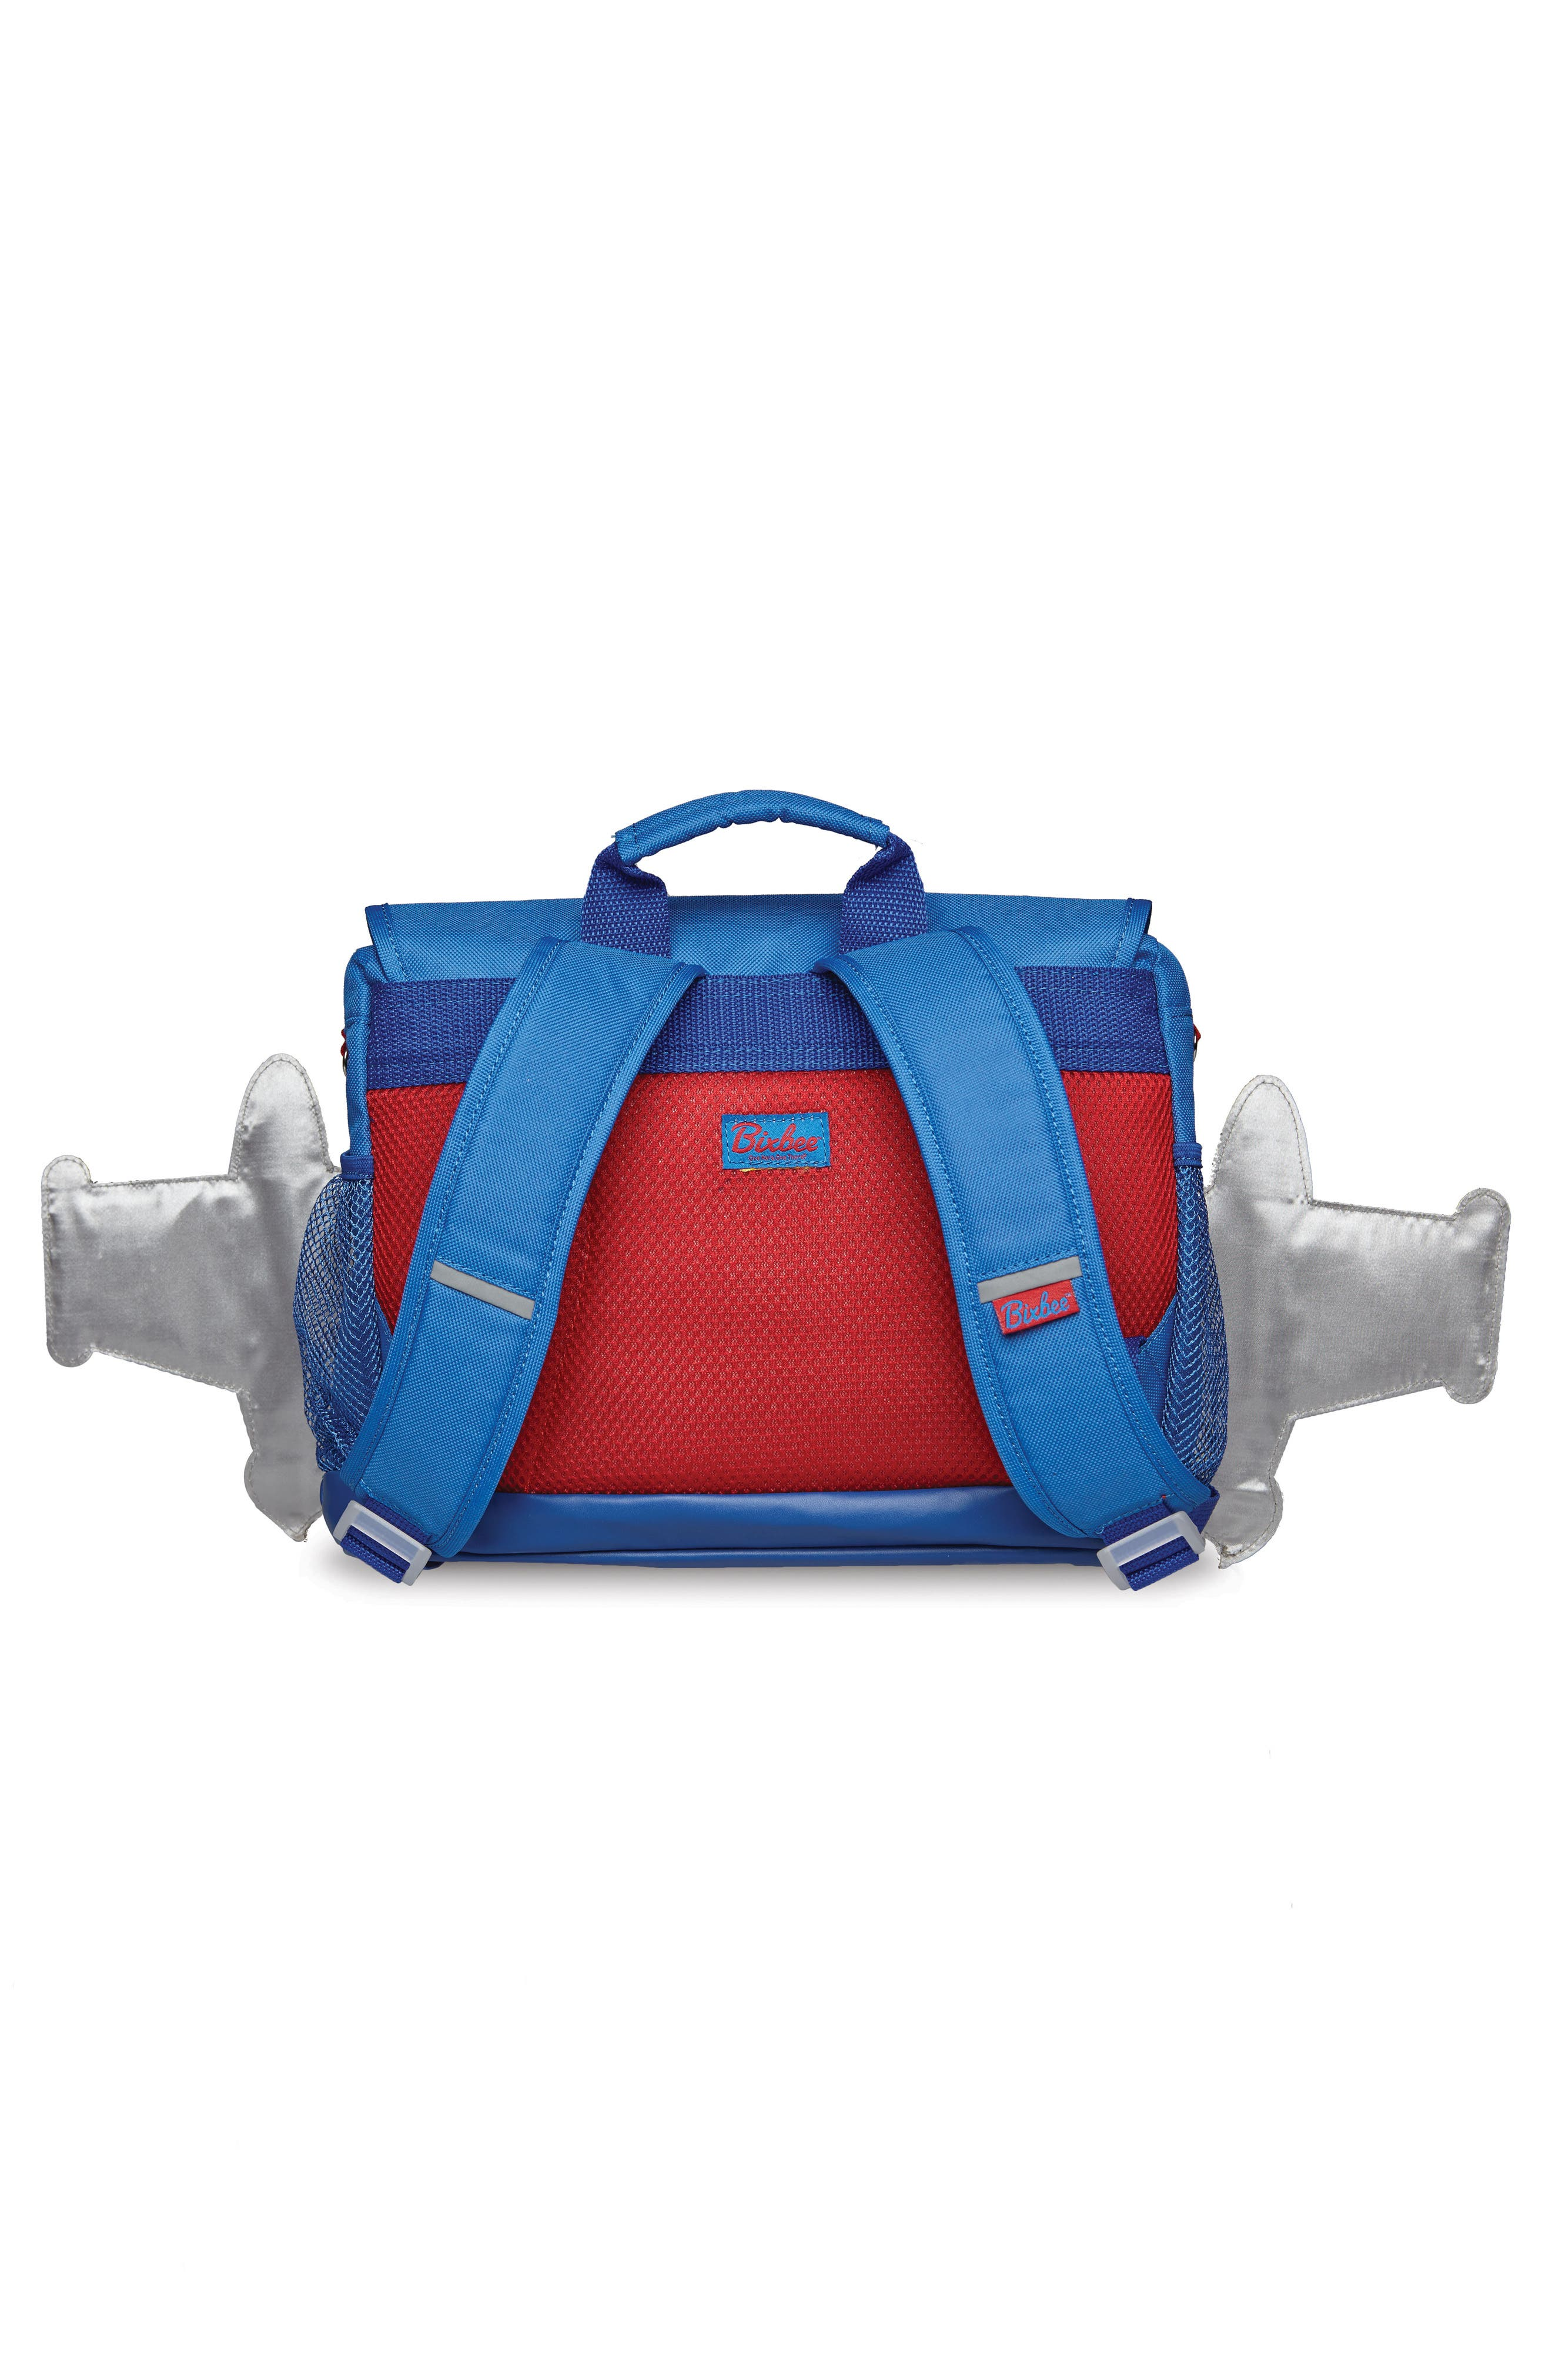 Rocketflyer Water-Resistant Backpack,                             Alternate thumbnail 2, color,                             Blue